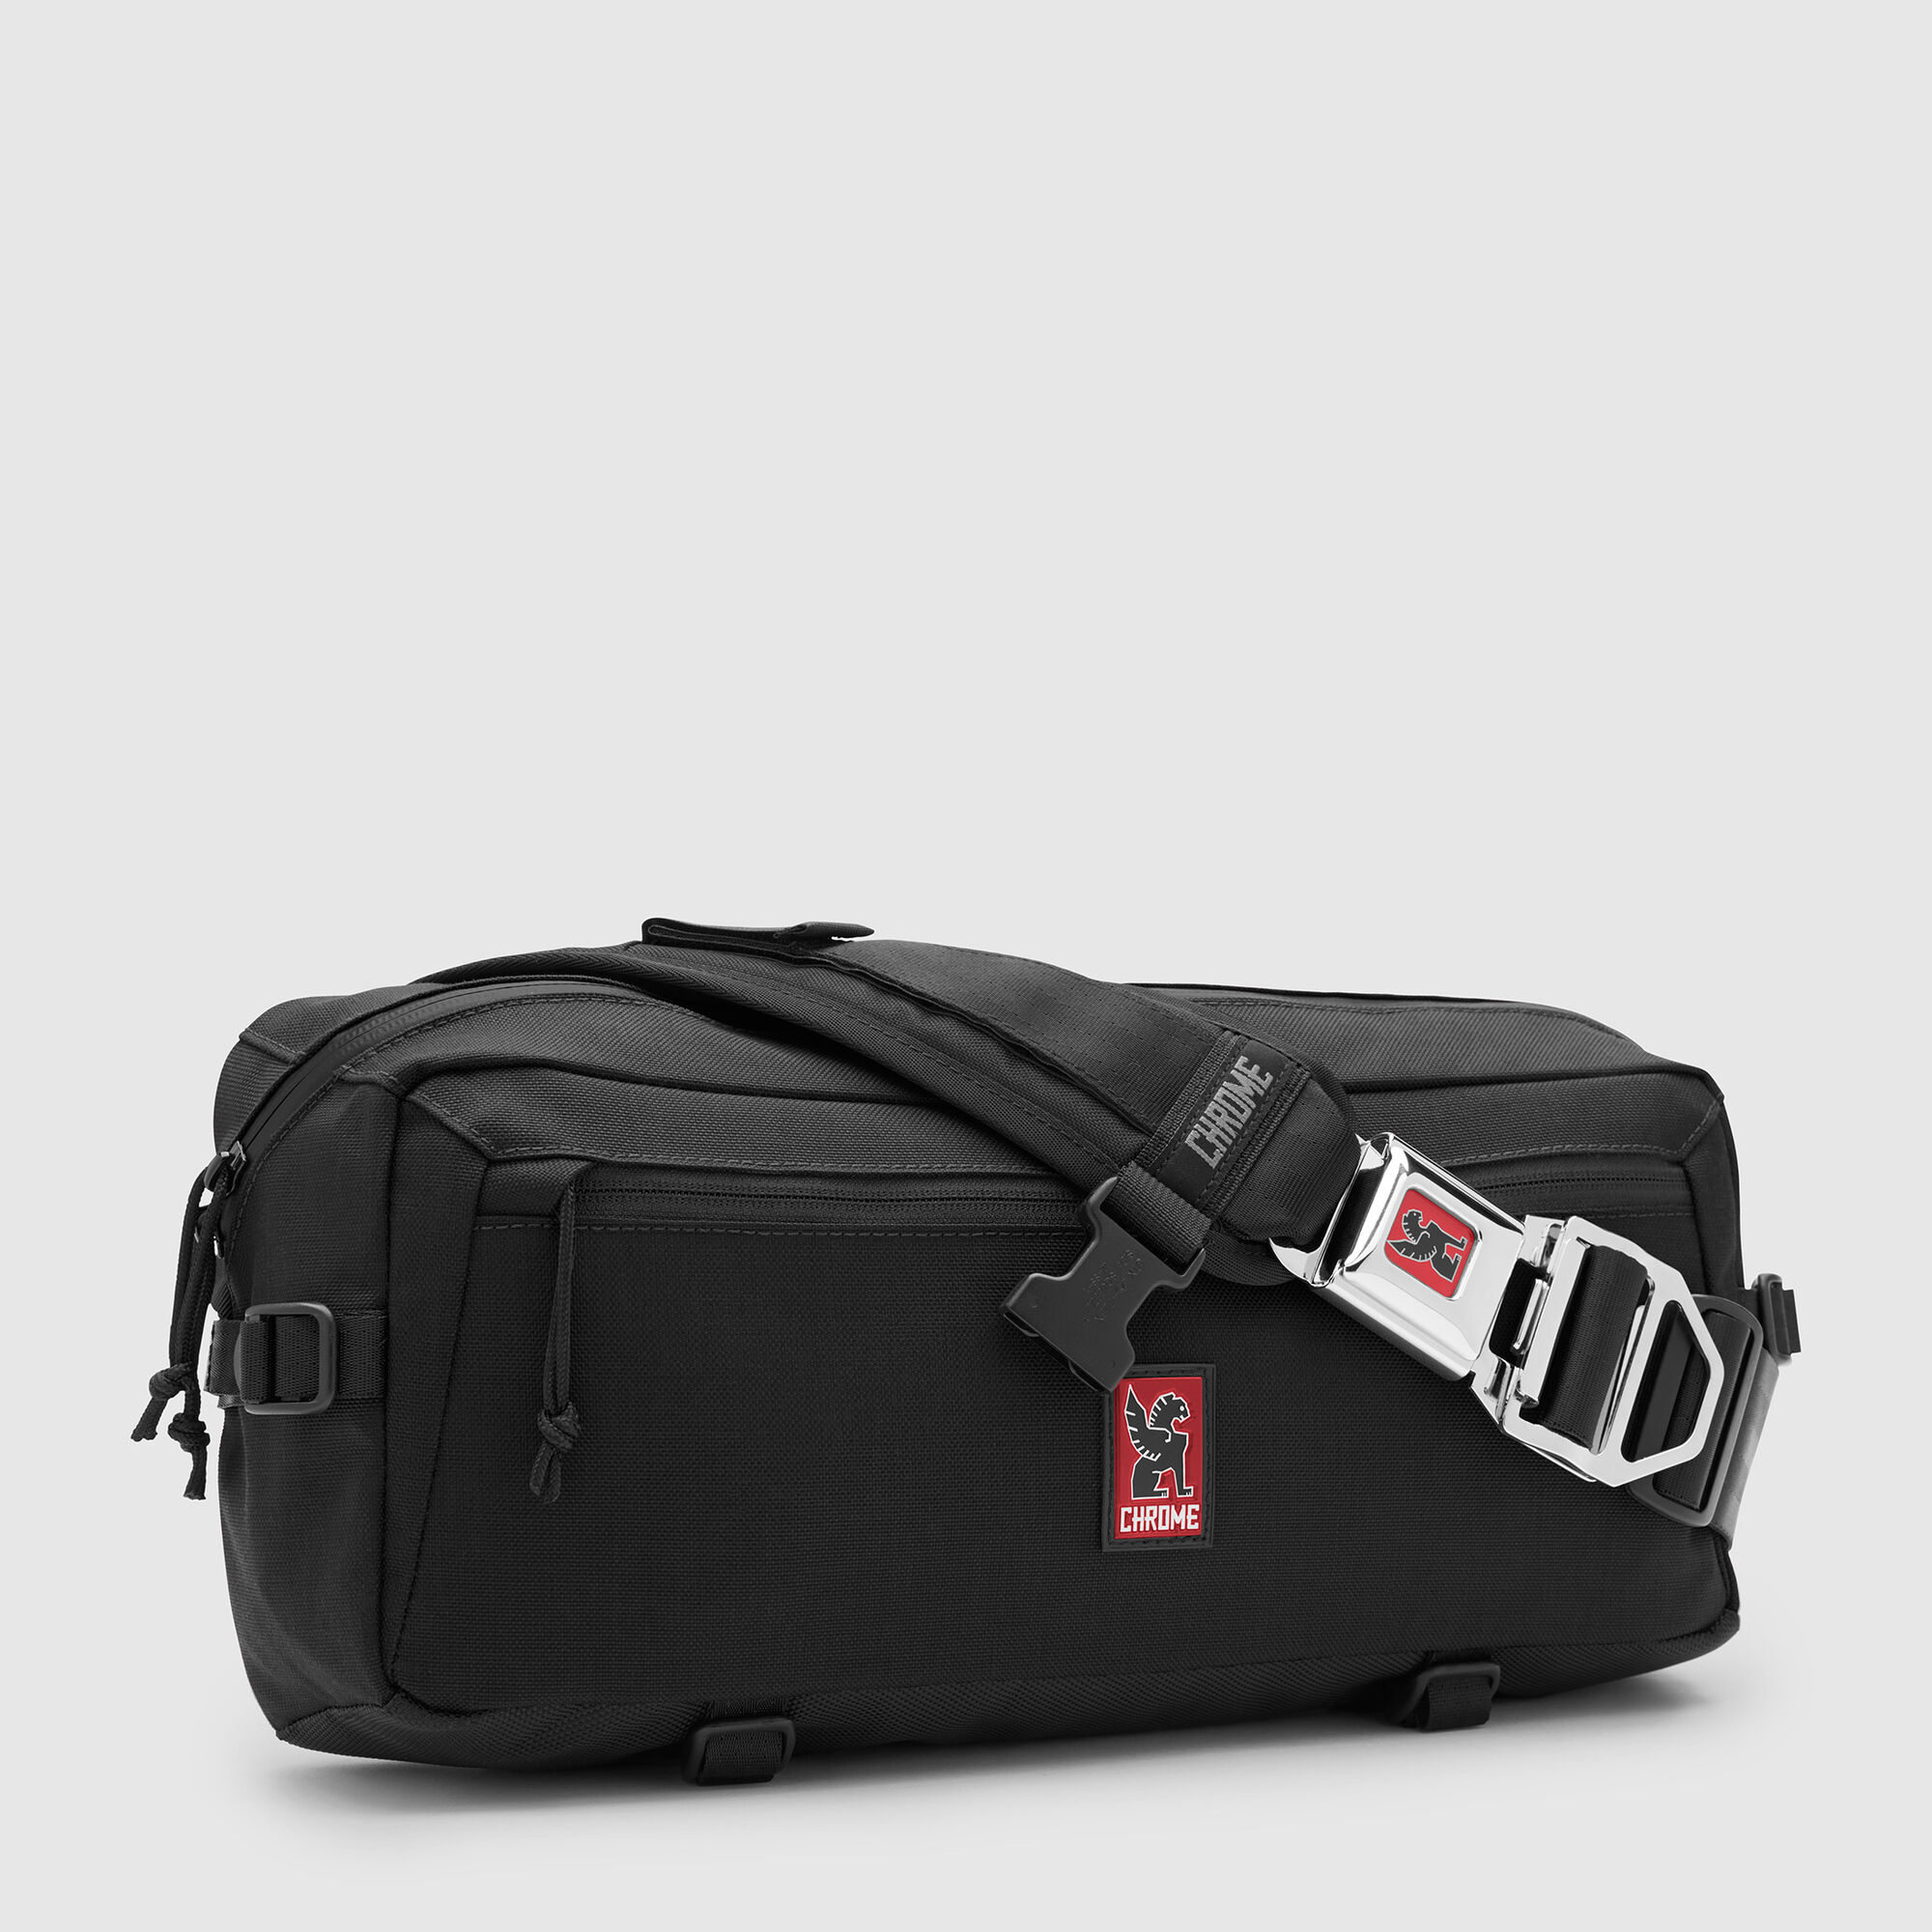 Kadet Nylon Messenger Bag In Black Small View